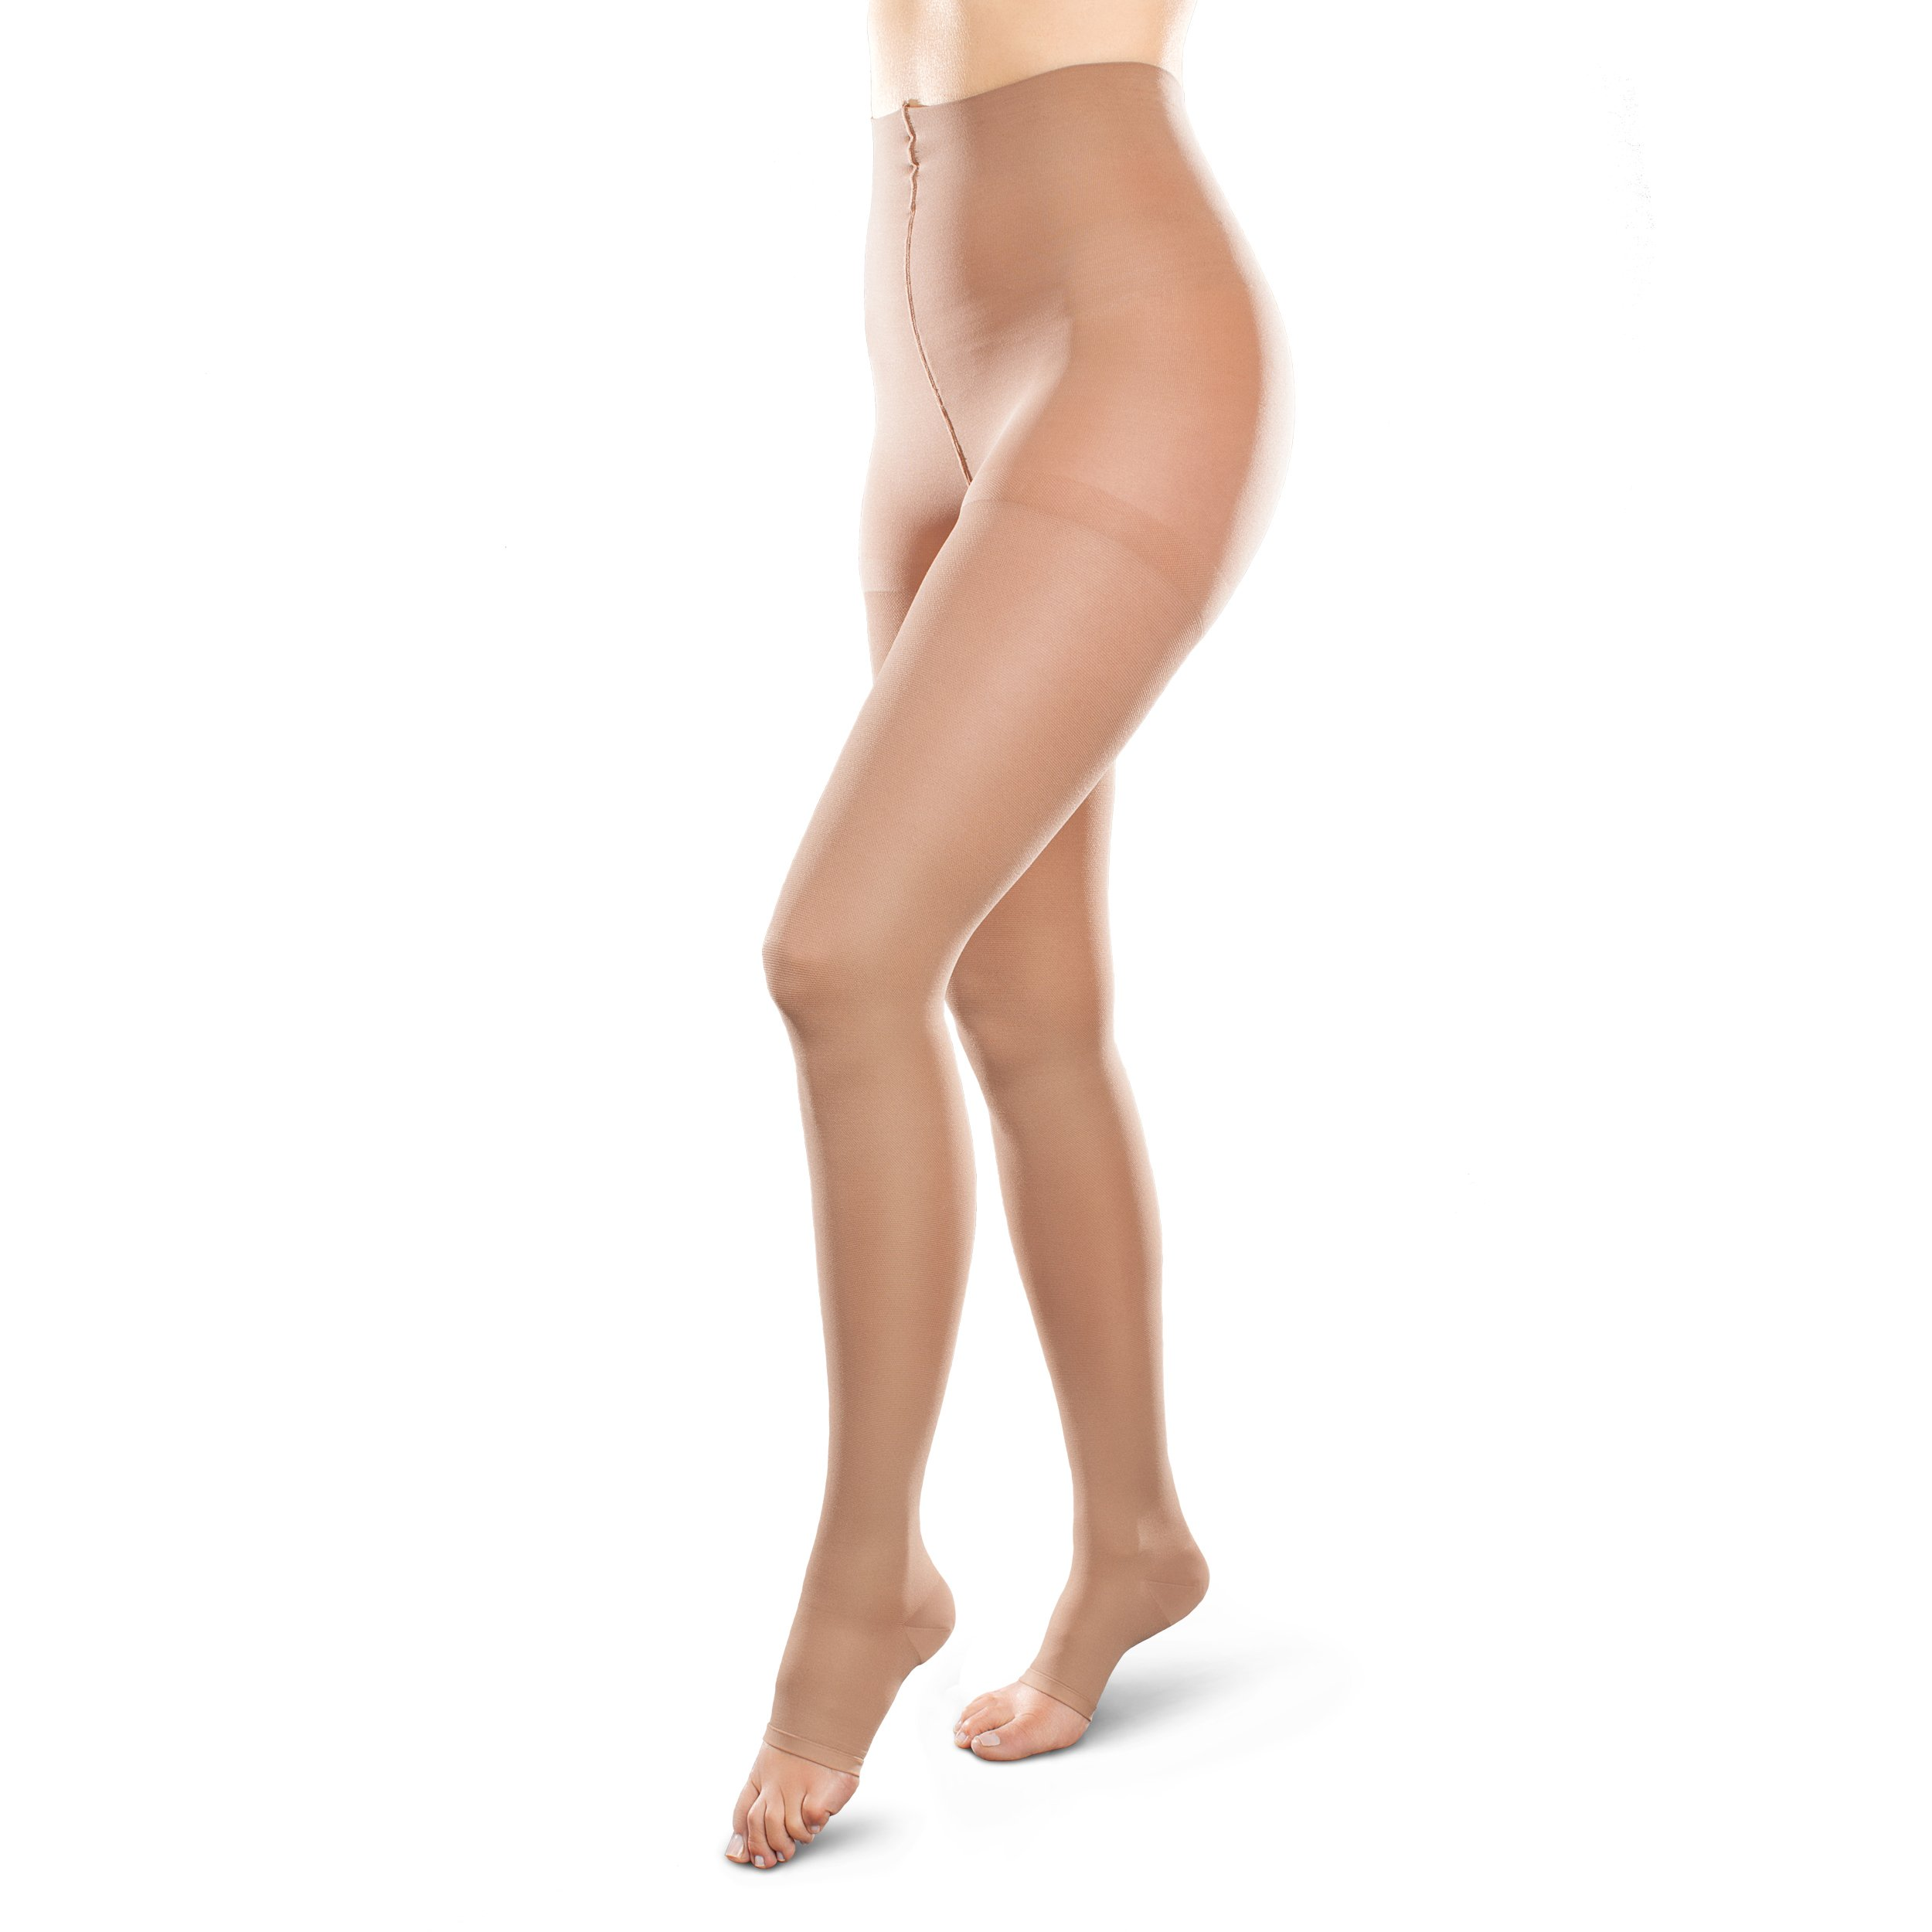 Therafirm Opaque Open-Toe Waist Highs - 30-40mmHg Firm Compression Stockings (Sand, Small Long) by Therafirm (Image #1)